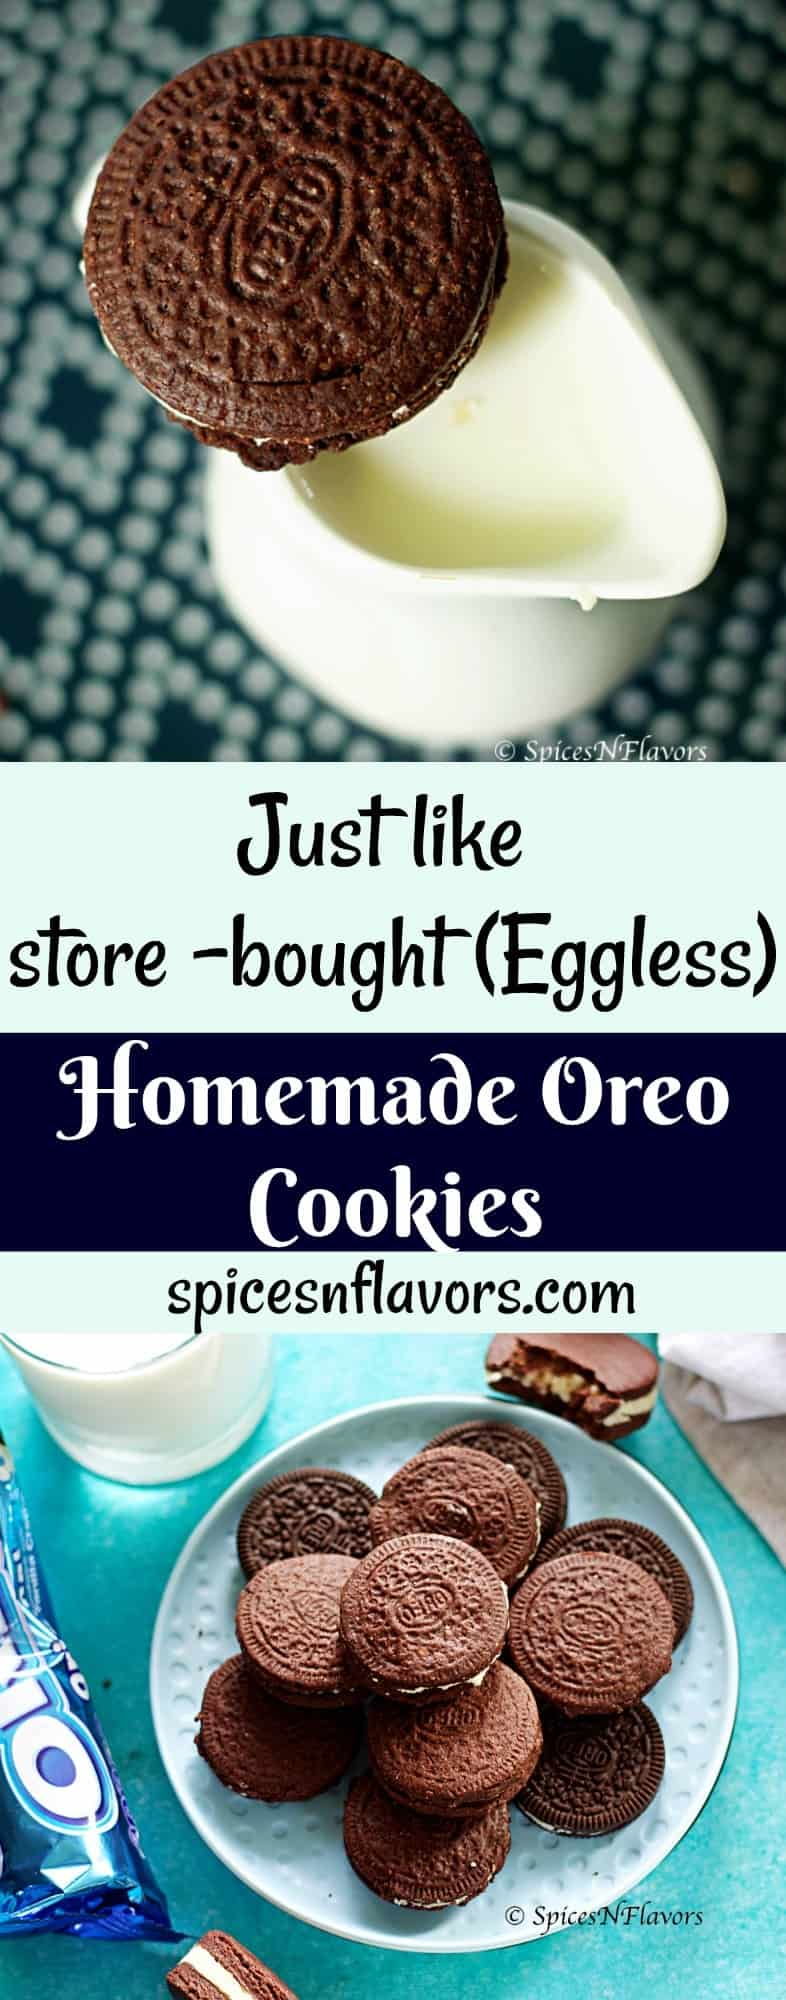 eggless homemade oreo cookies how to make oreo cookies at home diy oreo cookies from scratch #homemadeoreocookies #oreocookies #oreo #cookies #egglesscookies #oreocookies